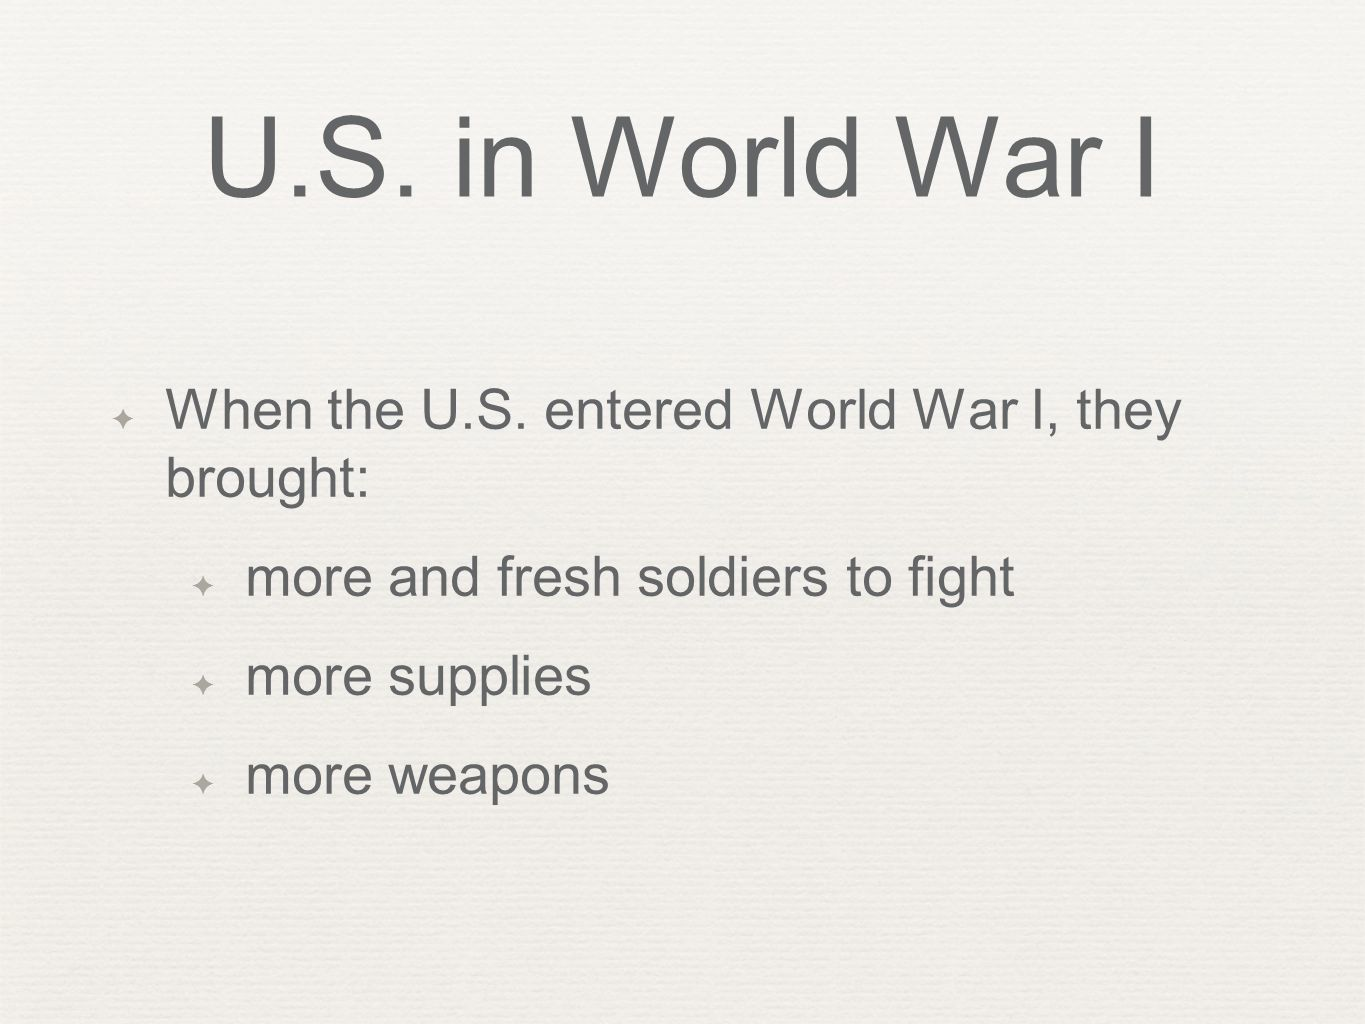 U.S. in World War I When the U.S. entered World War I, they brought: